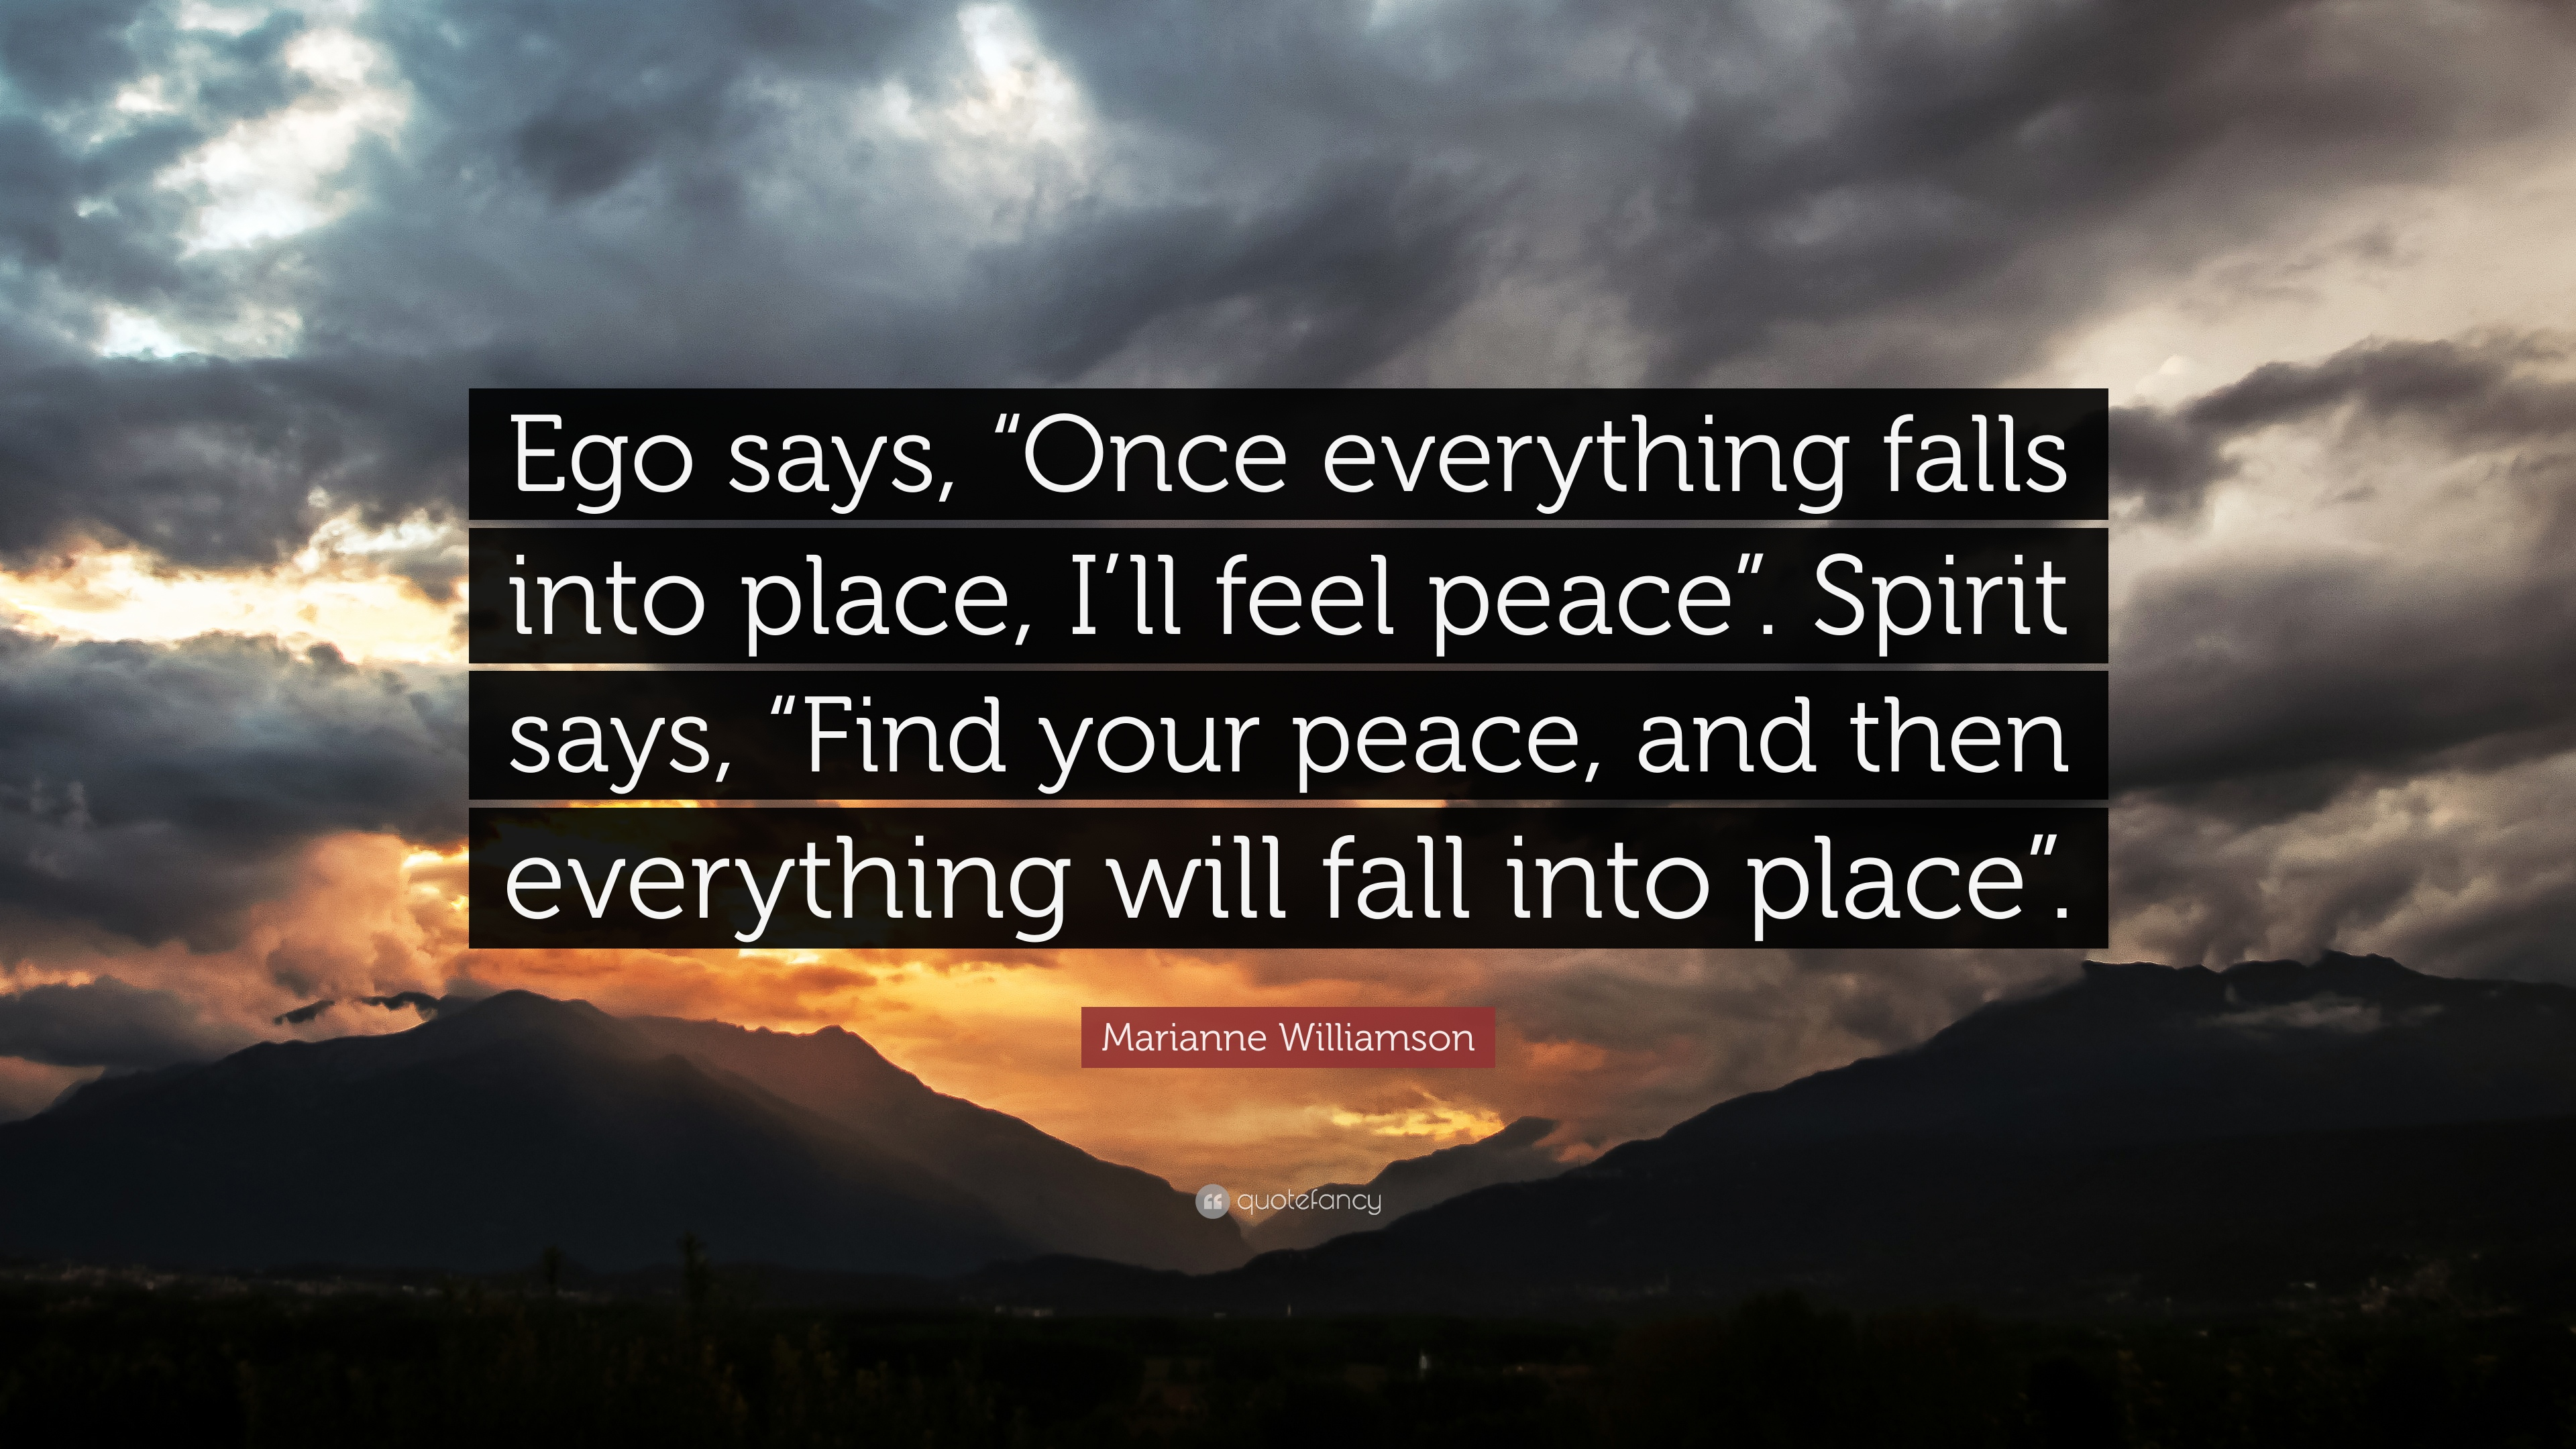 104803-Marianne-Williamson-Quote-Ego-says-Once-everything-falls-into.jpg